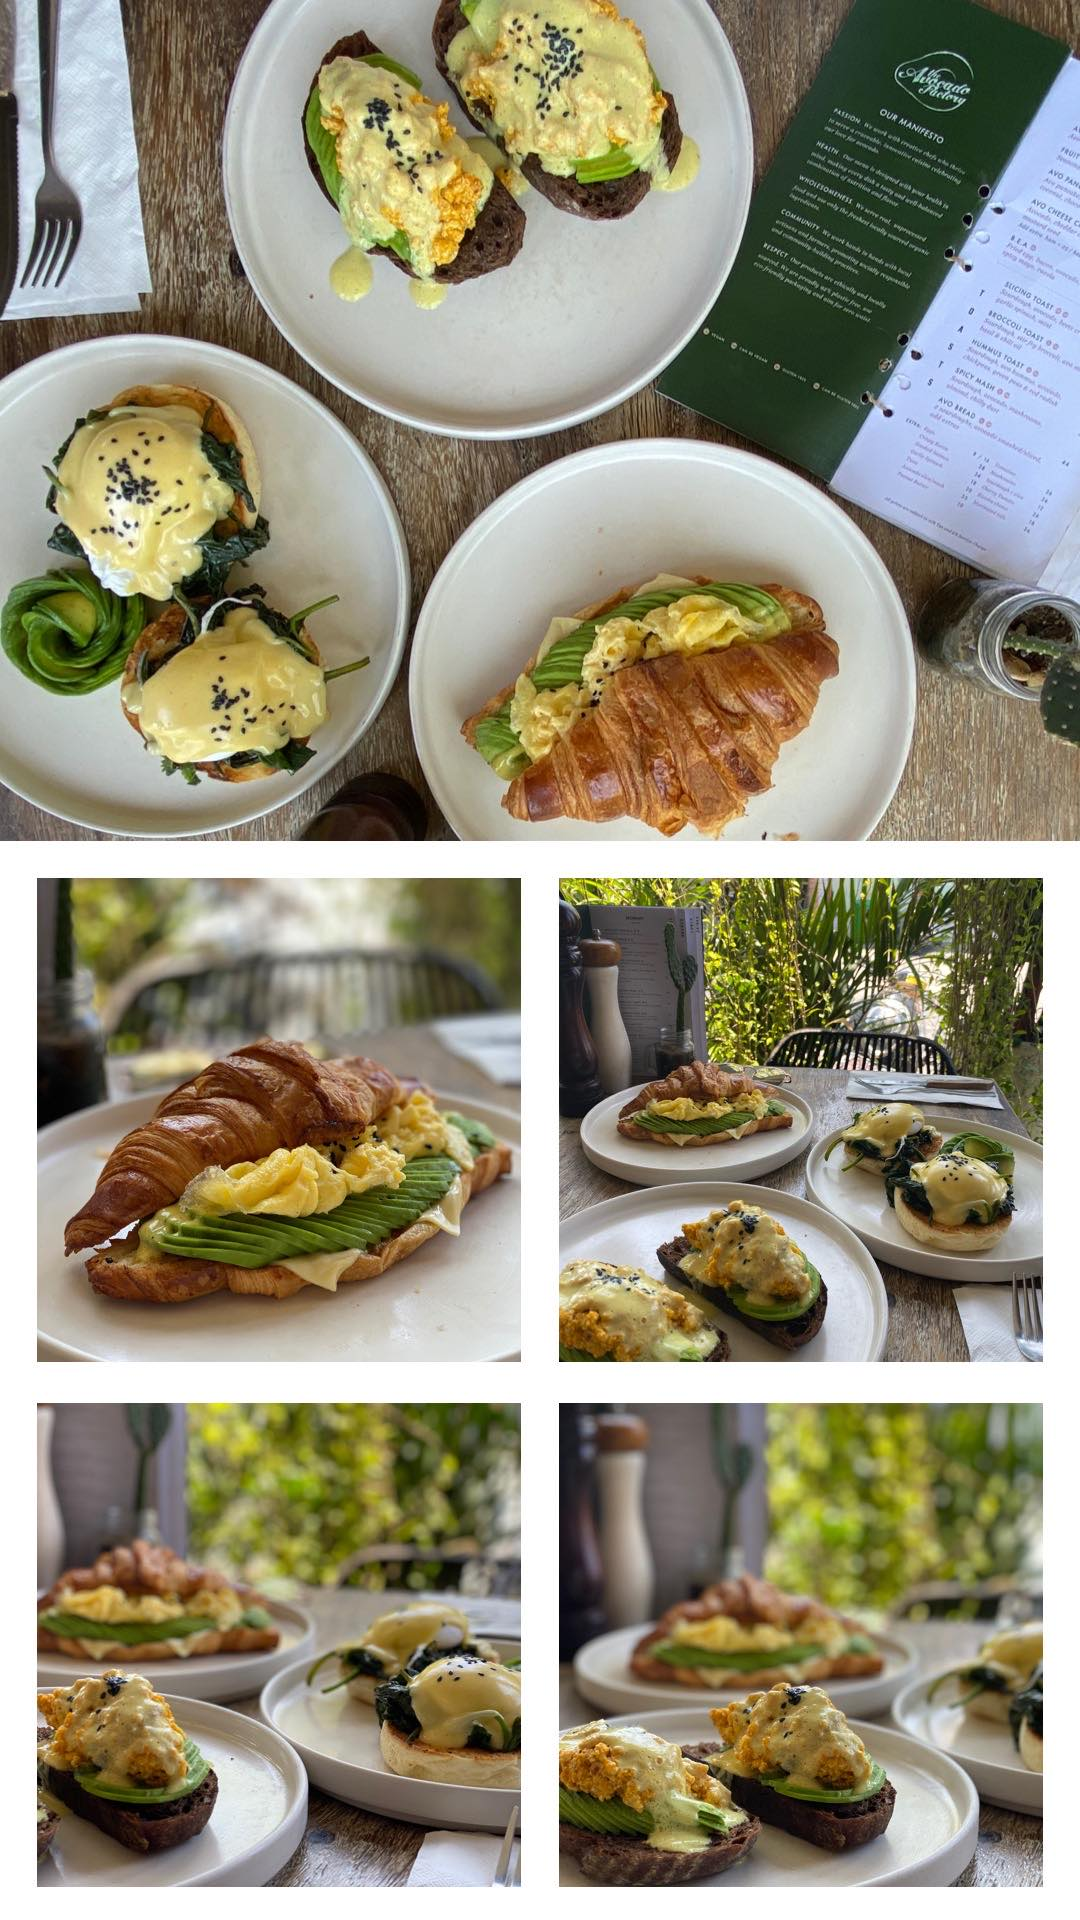 How Good is Avocado Though!?